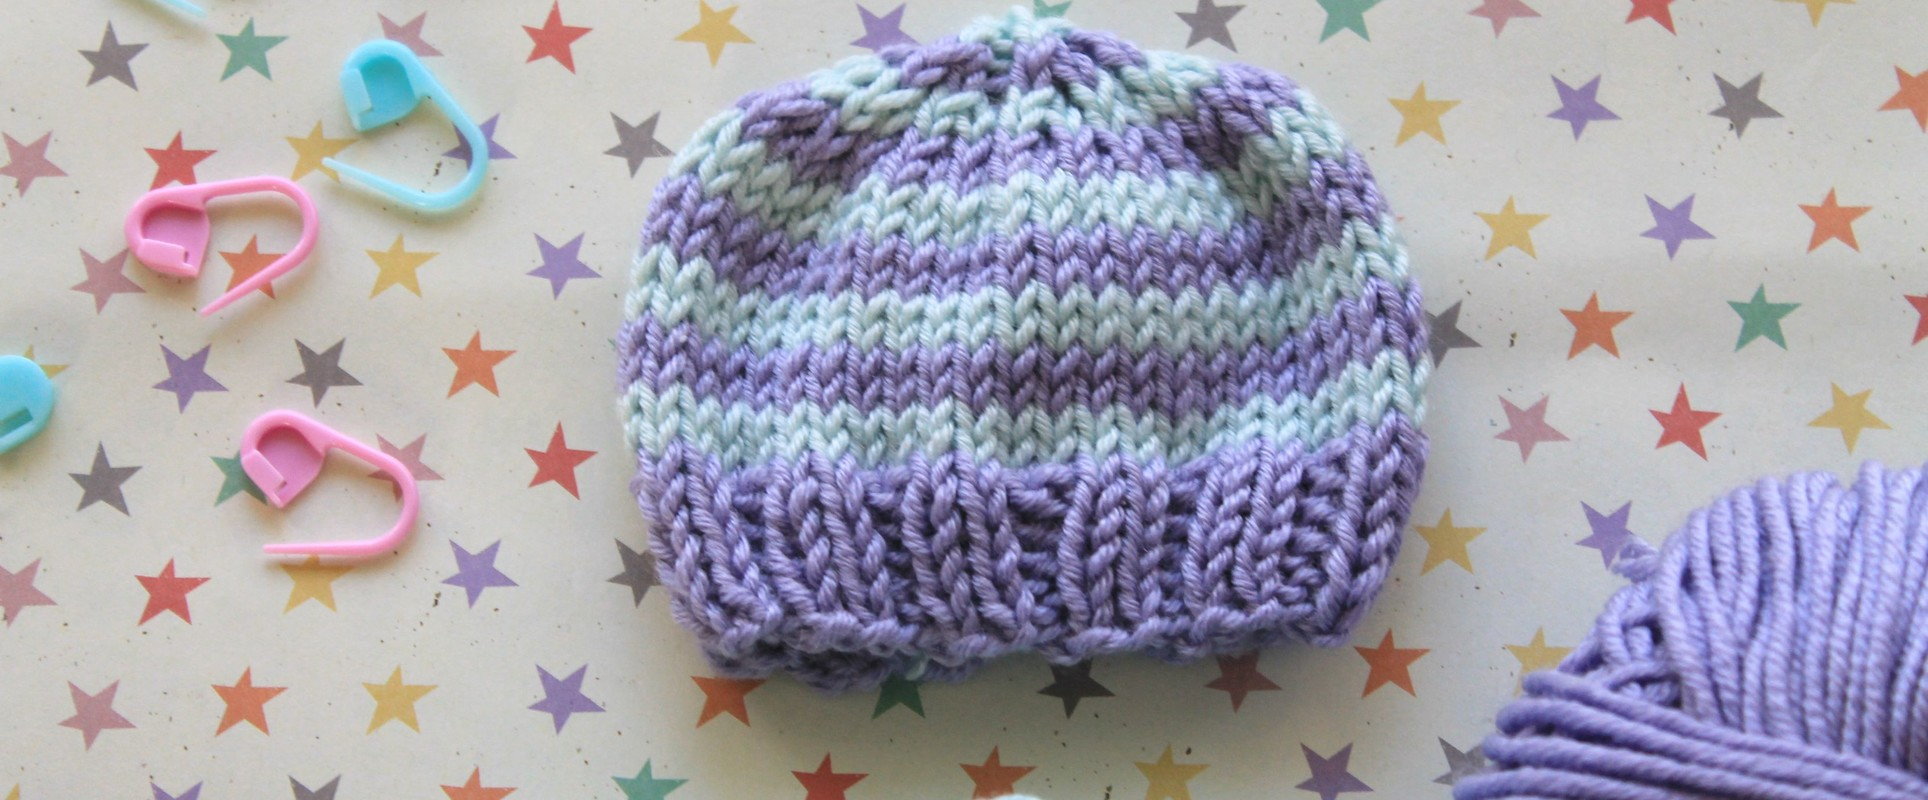 Premature Baby Knitting Patterns Knit Bit The Perfect Preemie Ba Hat Lovecrafts